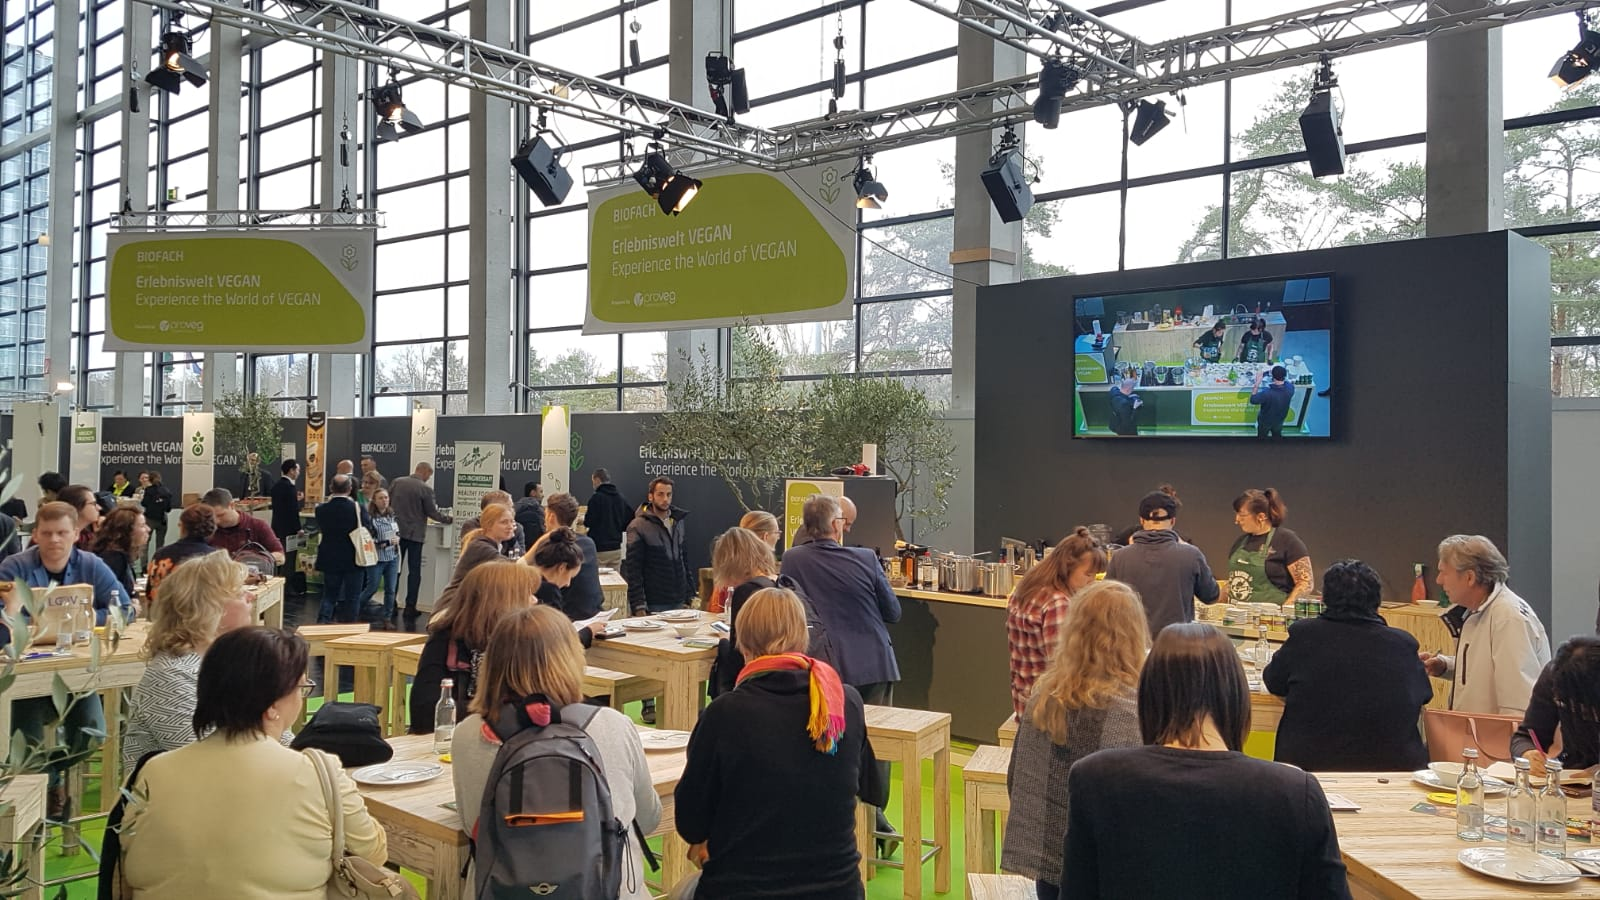 Biofach registers record number of exhibitors